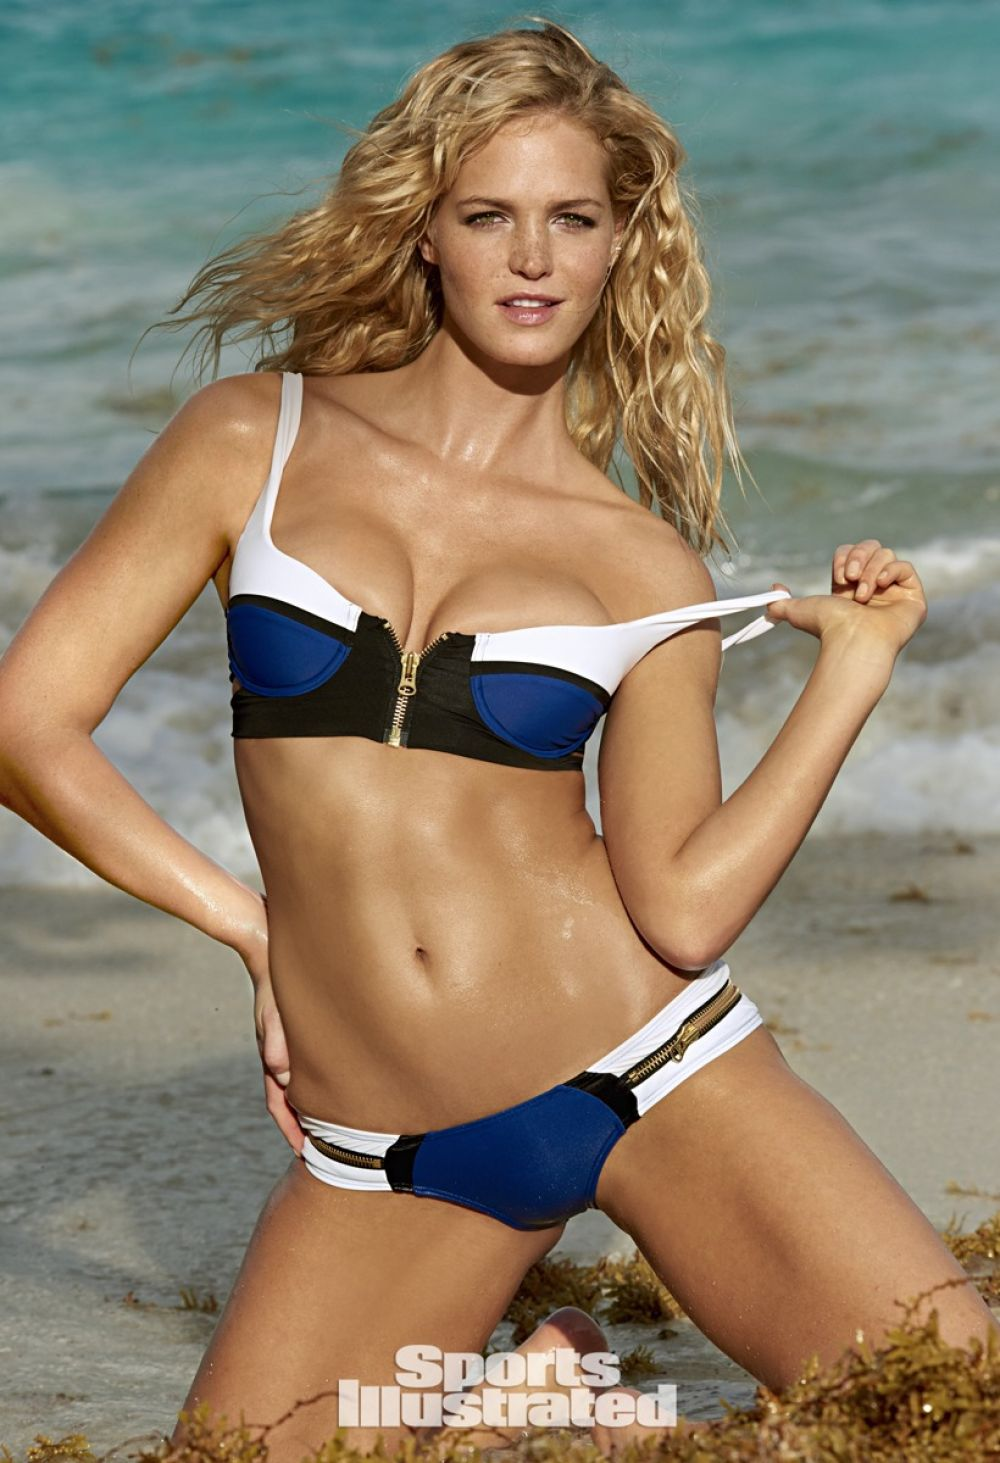 ERIN HEATHERTON in Sports Illustrated Swimsuit 2015 Issue